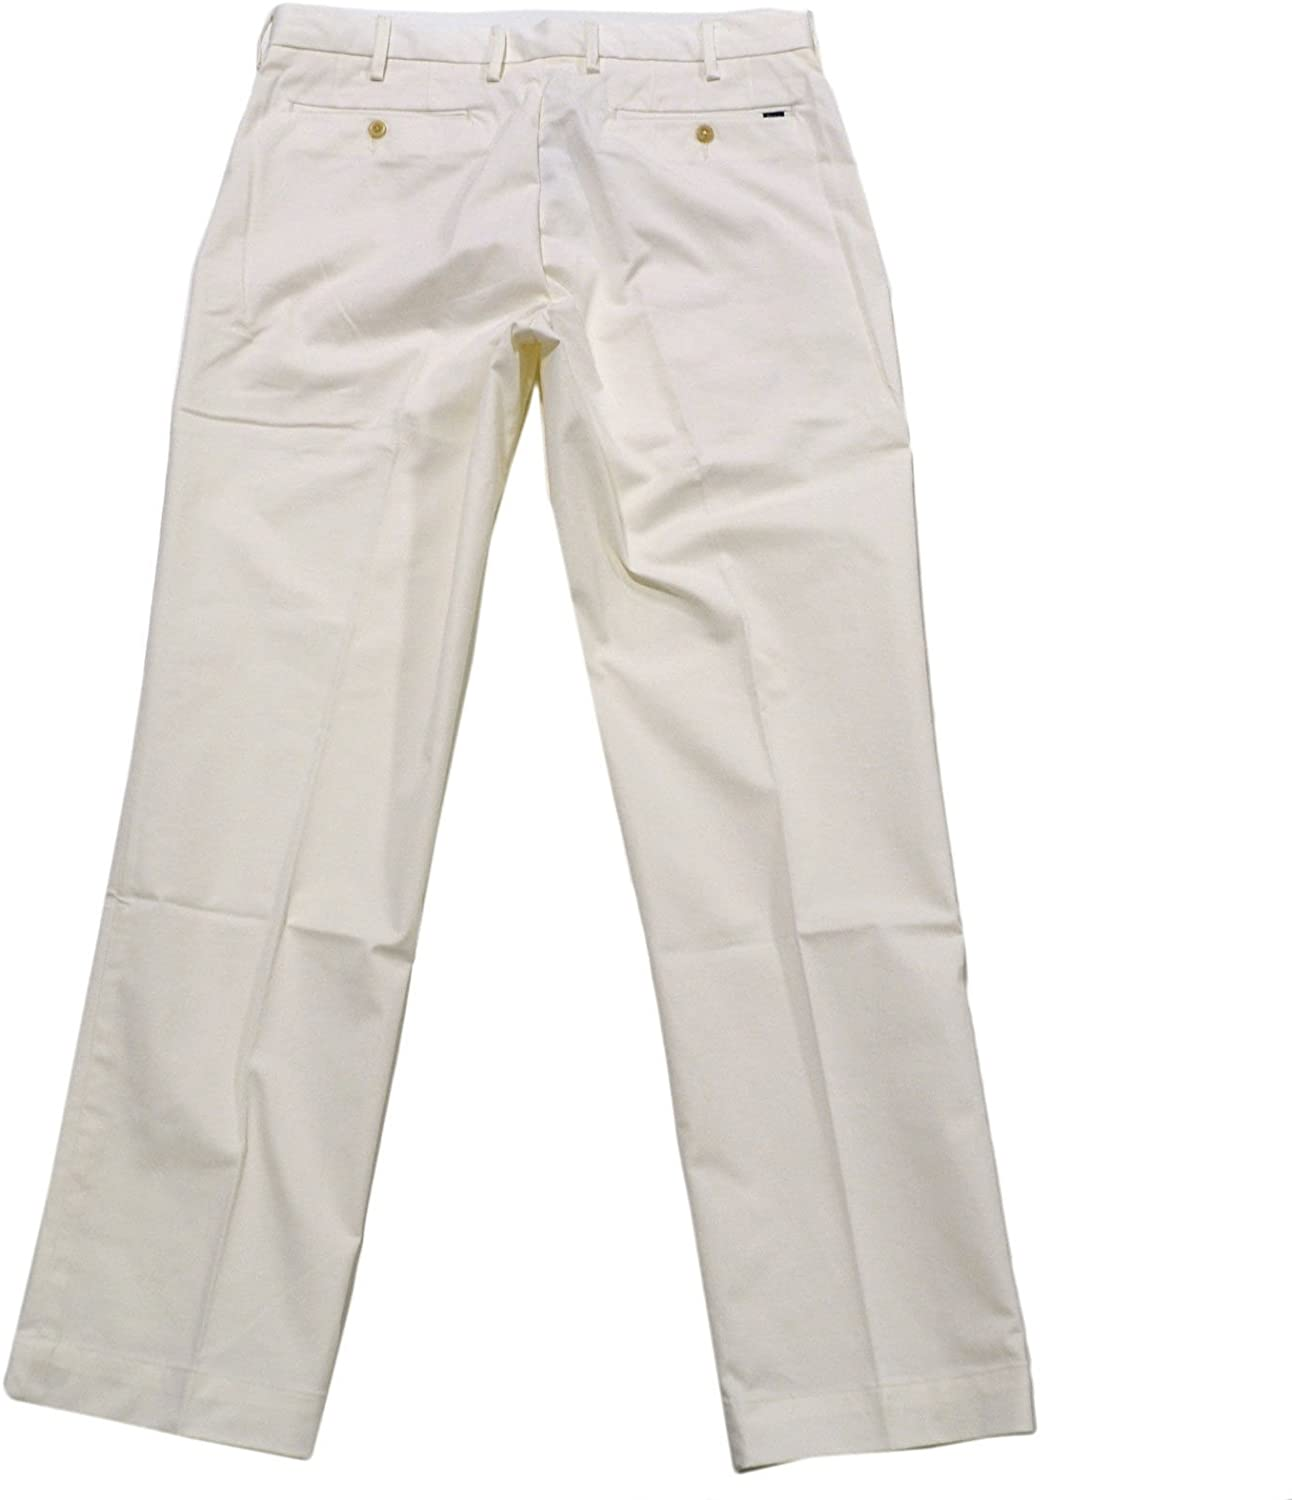 Polo Ralph Lauren Chinos Mens Stretch Classic Fit 40x30, Ivory